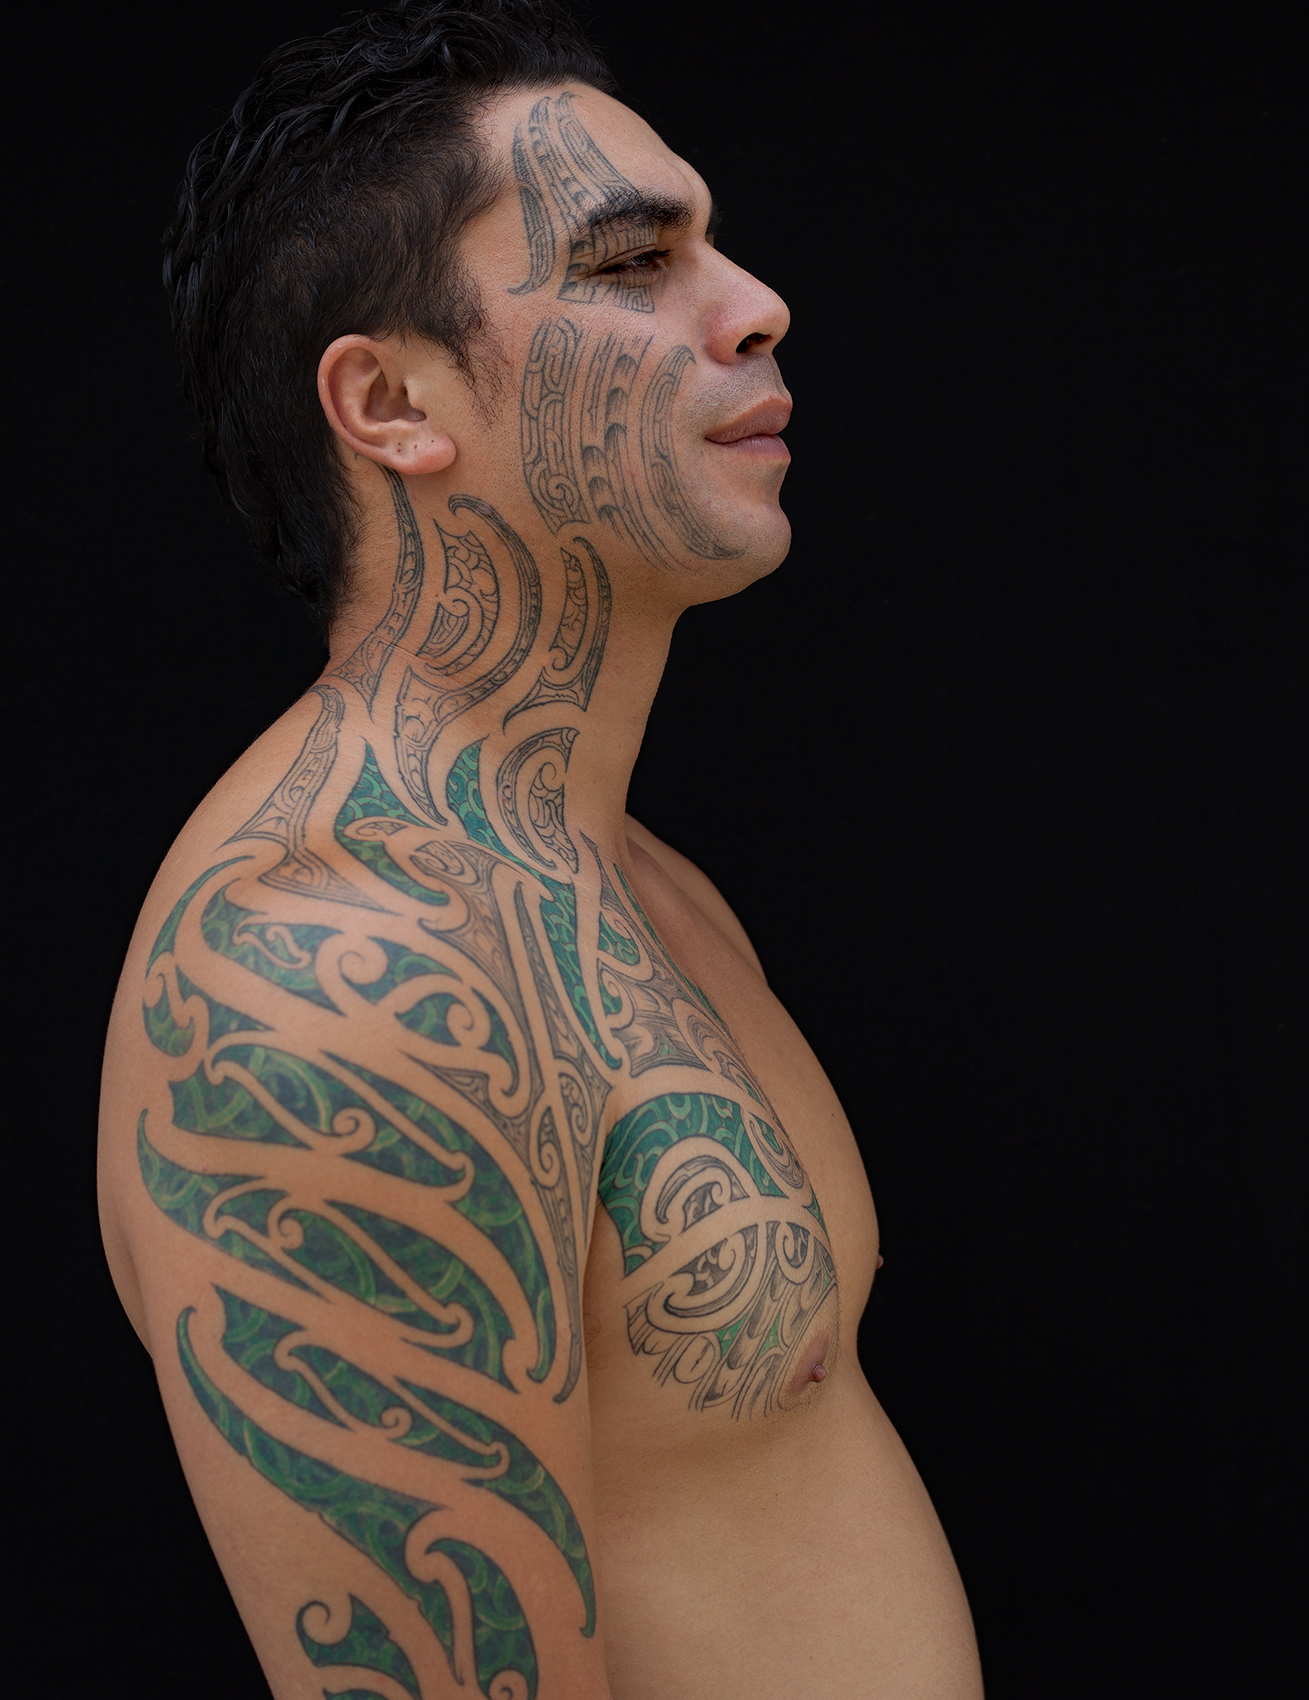 Axel Bernstorff creative portraiture tattoos fingers ink identity stag expressionism identity tribe muscle individuality